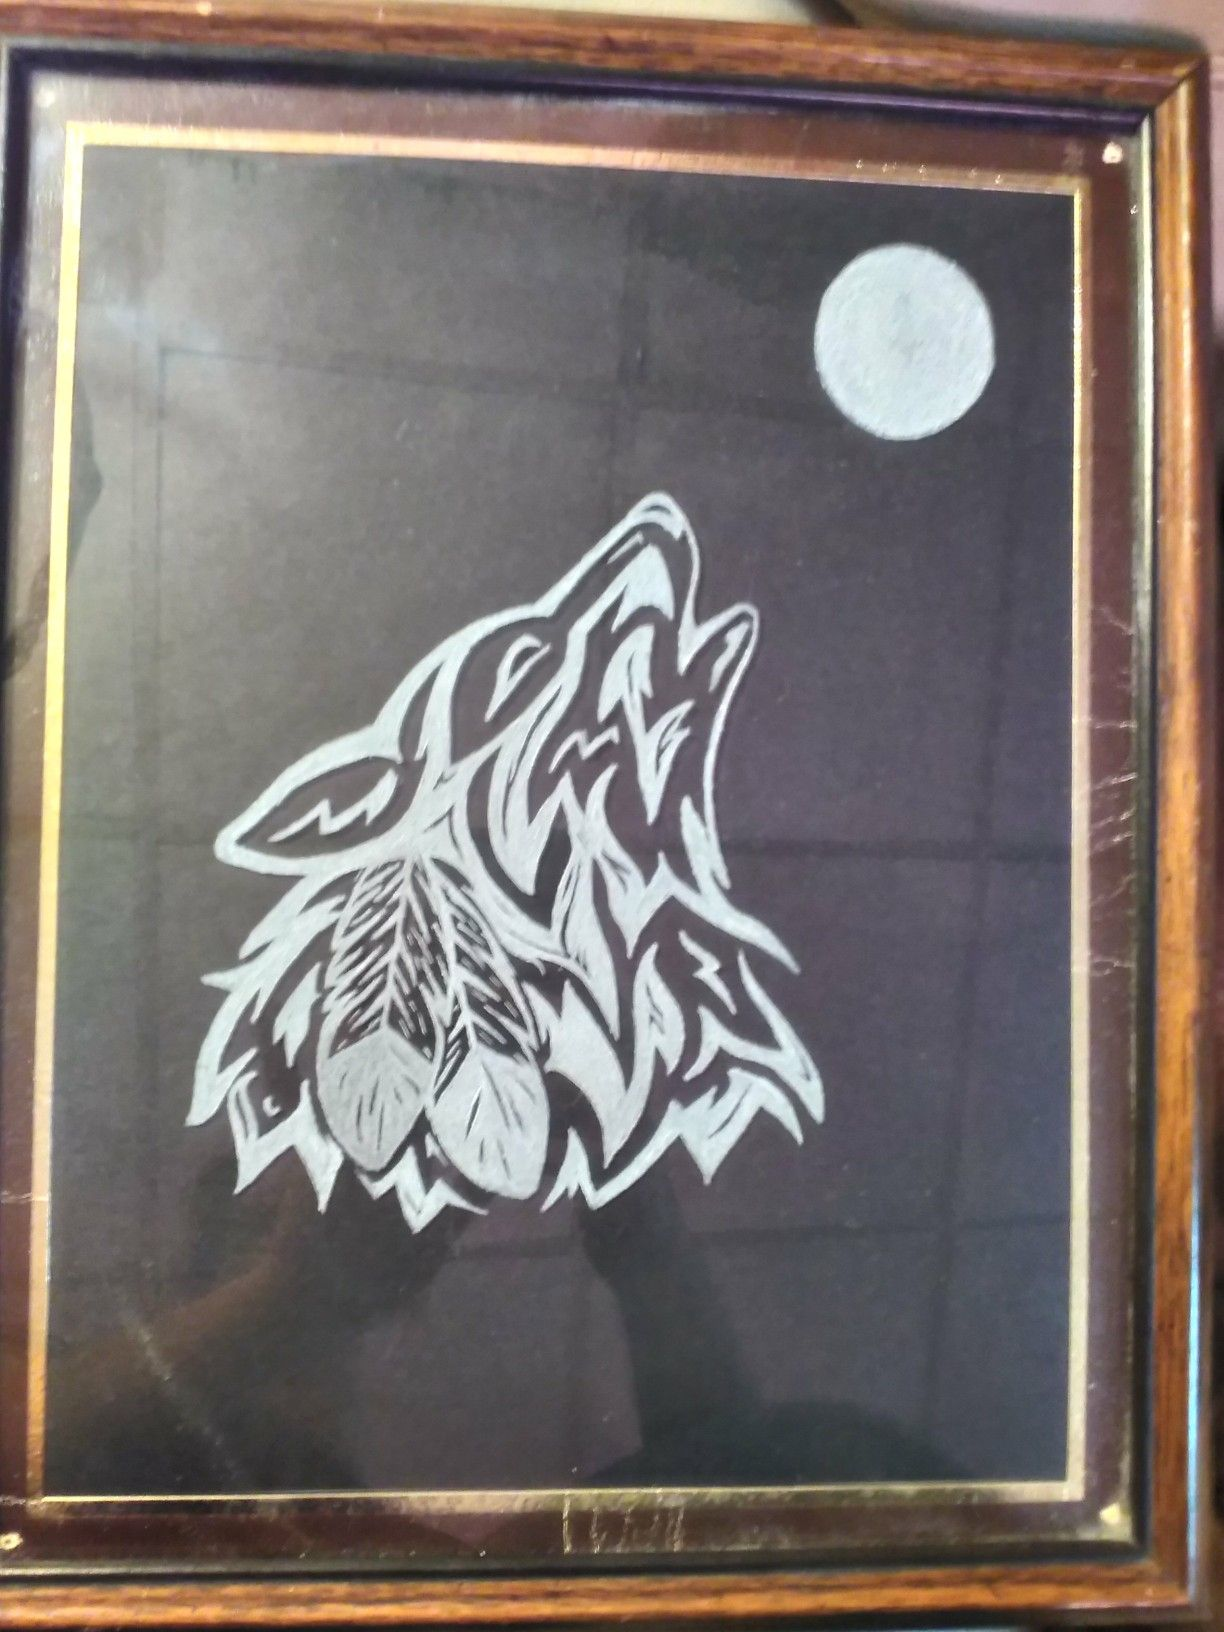 I etched a trible wolf and moon on the glass of a picture frame ...